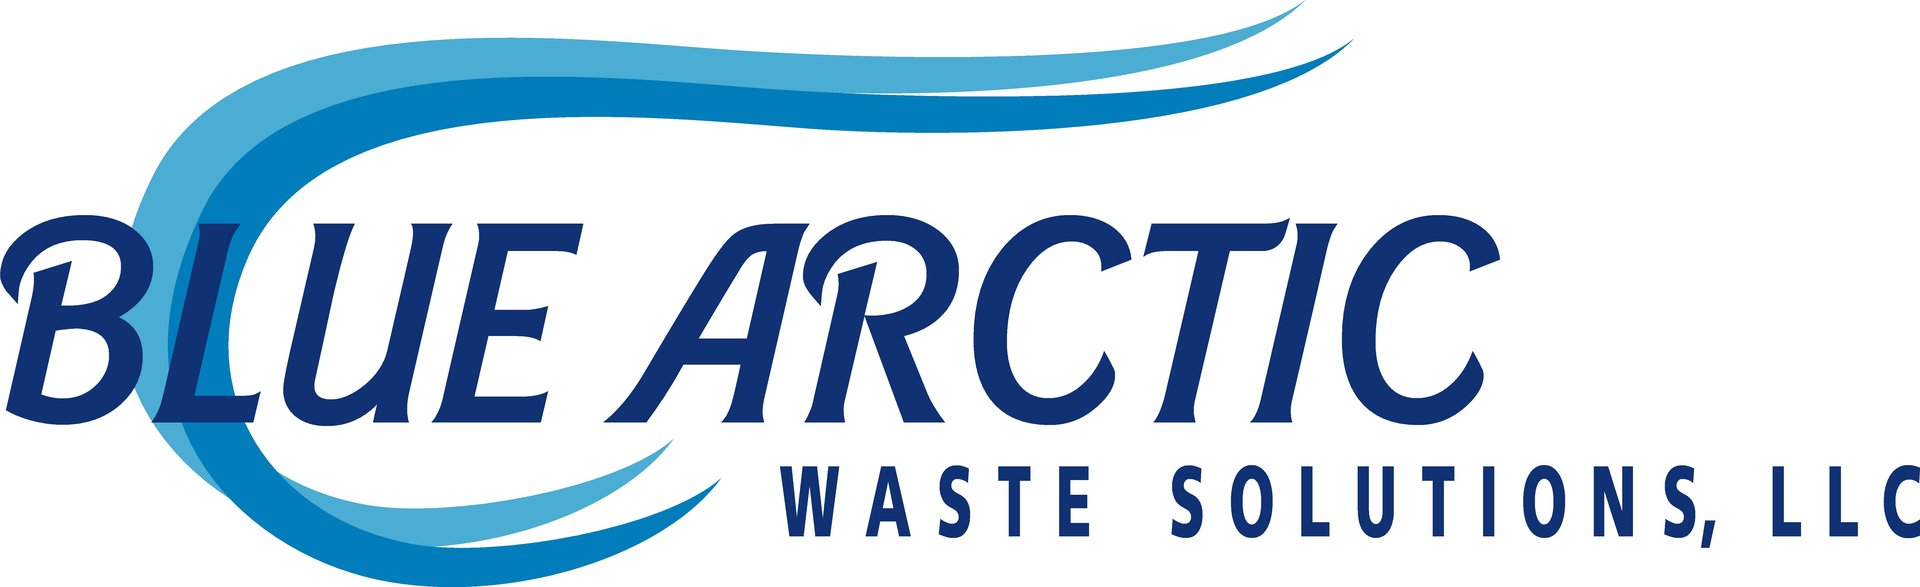 Blue Arctic Waste Solutions, LLC